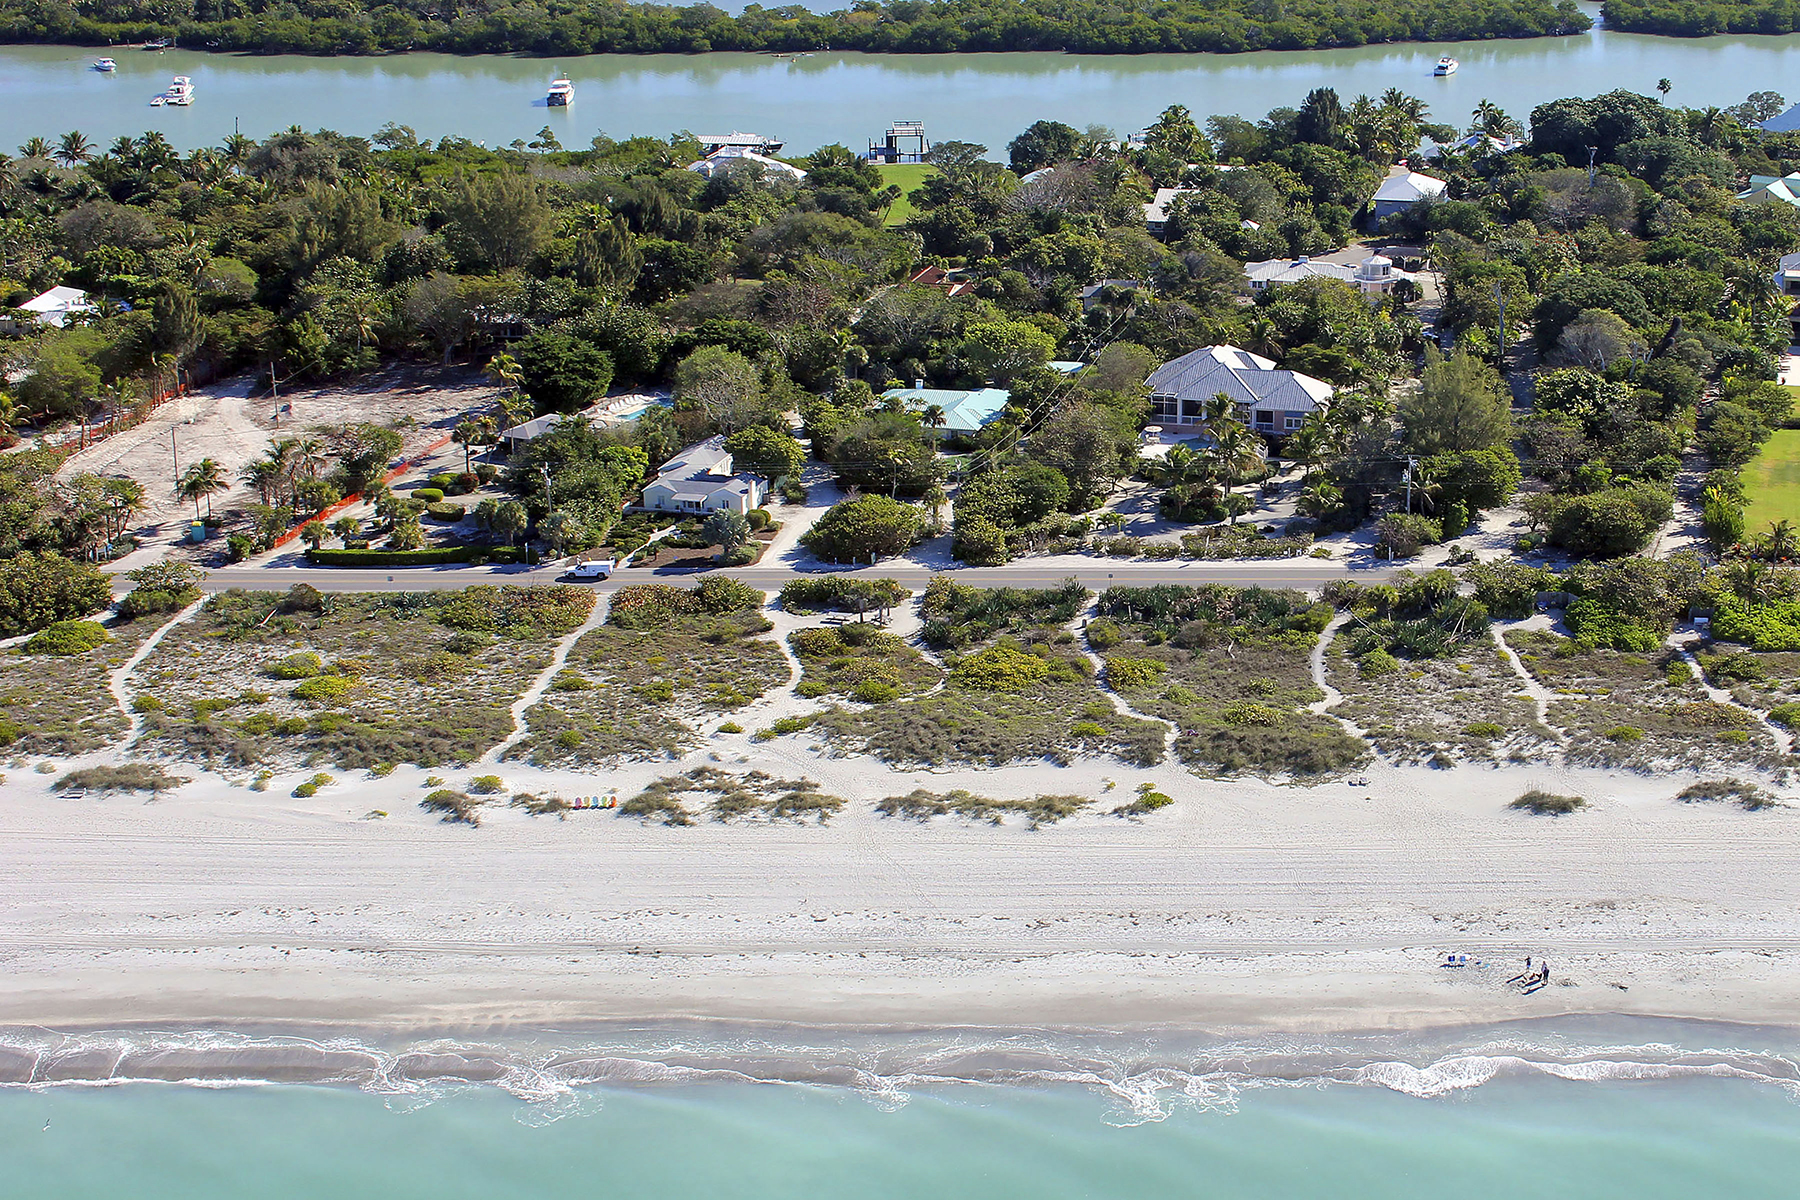 Single Family Home for Sale at 16177 Captiva Dr , Captiva, FL 33924 16177 Captiva Dr, Captiva, Florida 33924 United States